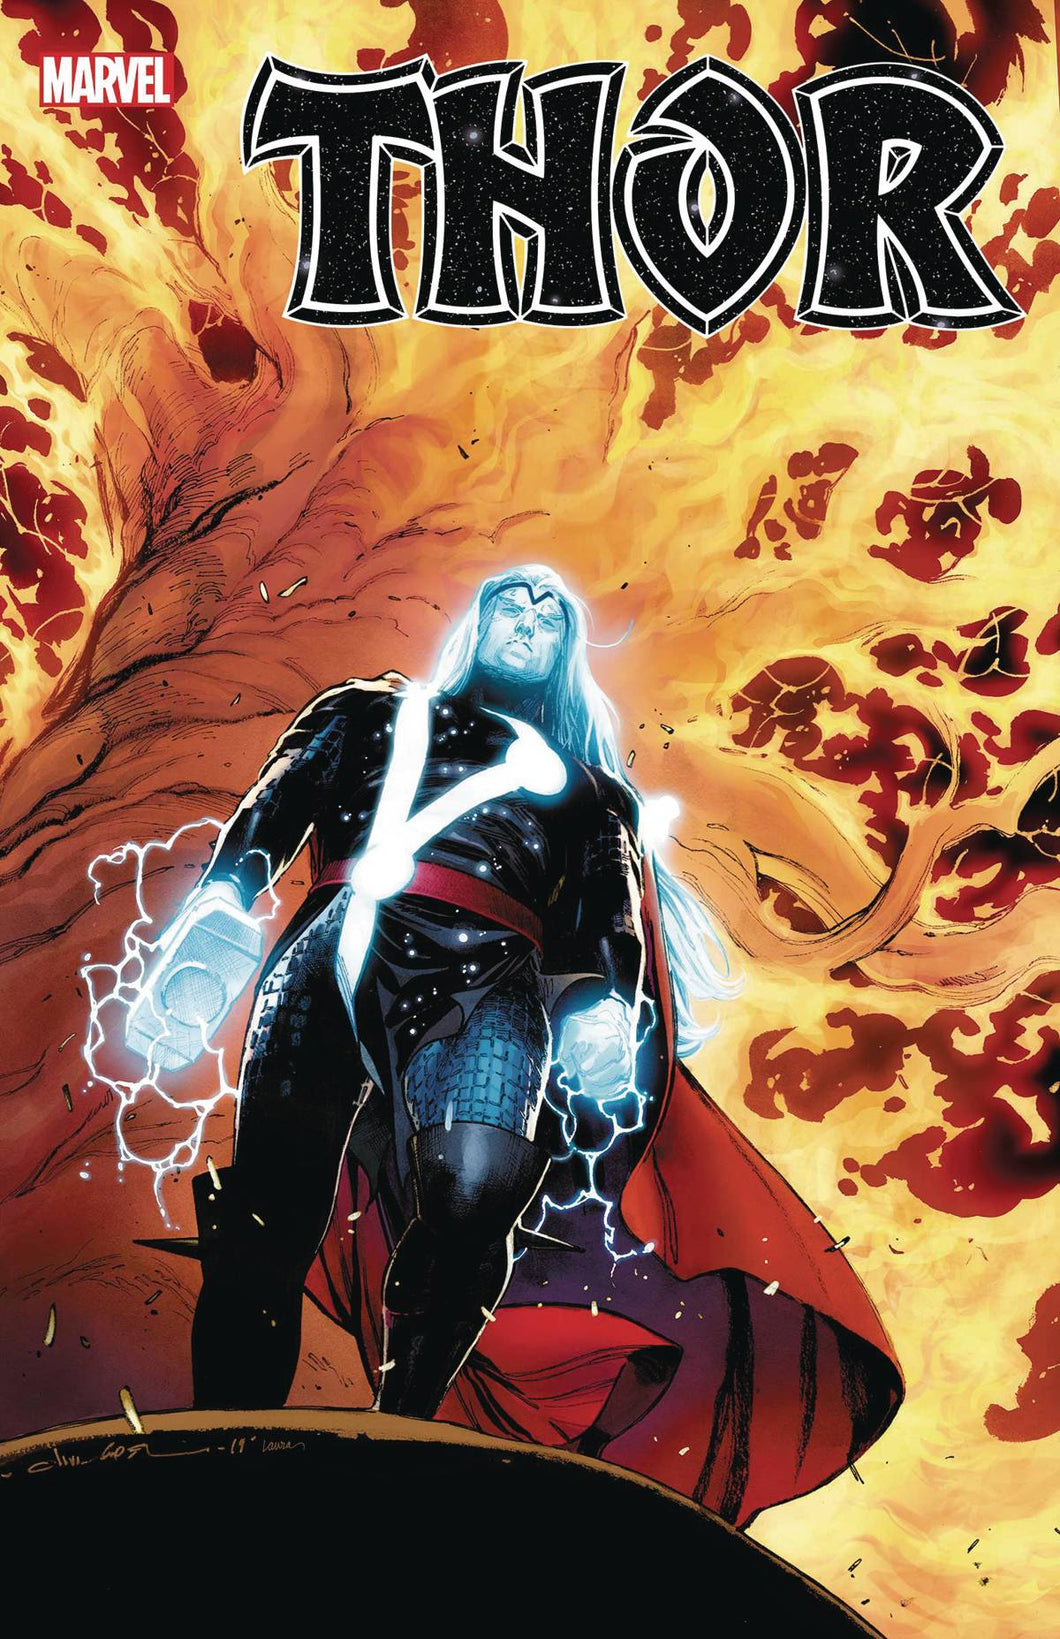 Thor #5 - The Black Winter